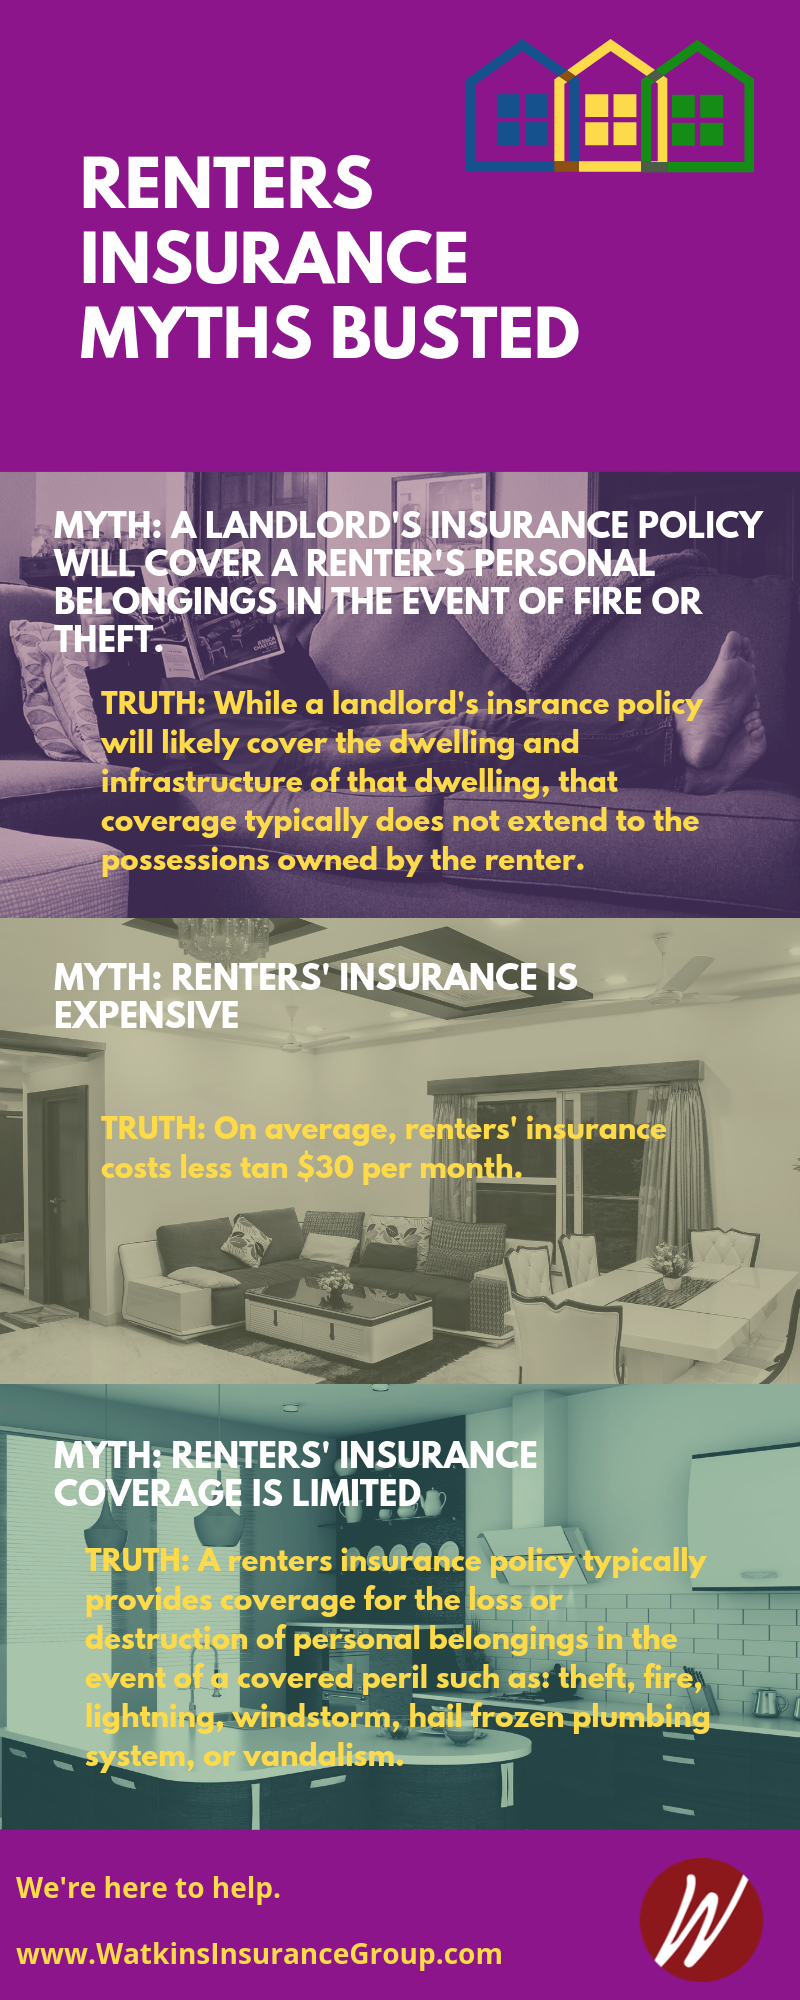 Homeowners Insurance in Austin, Texas Renters insurance